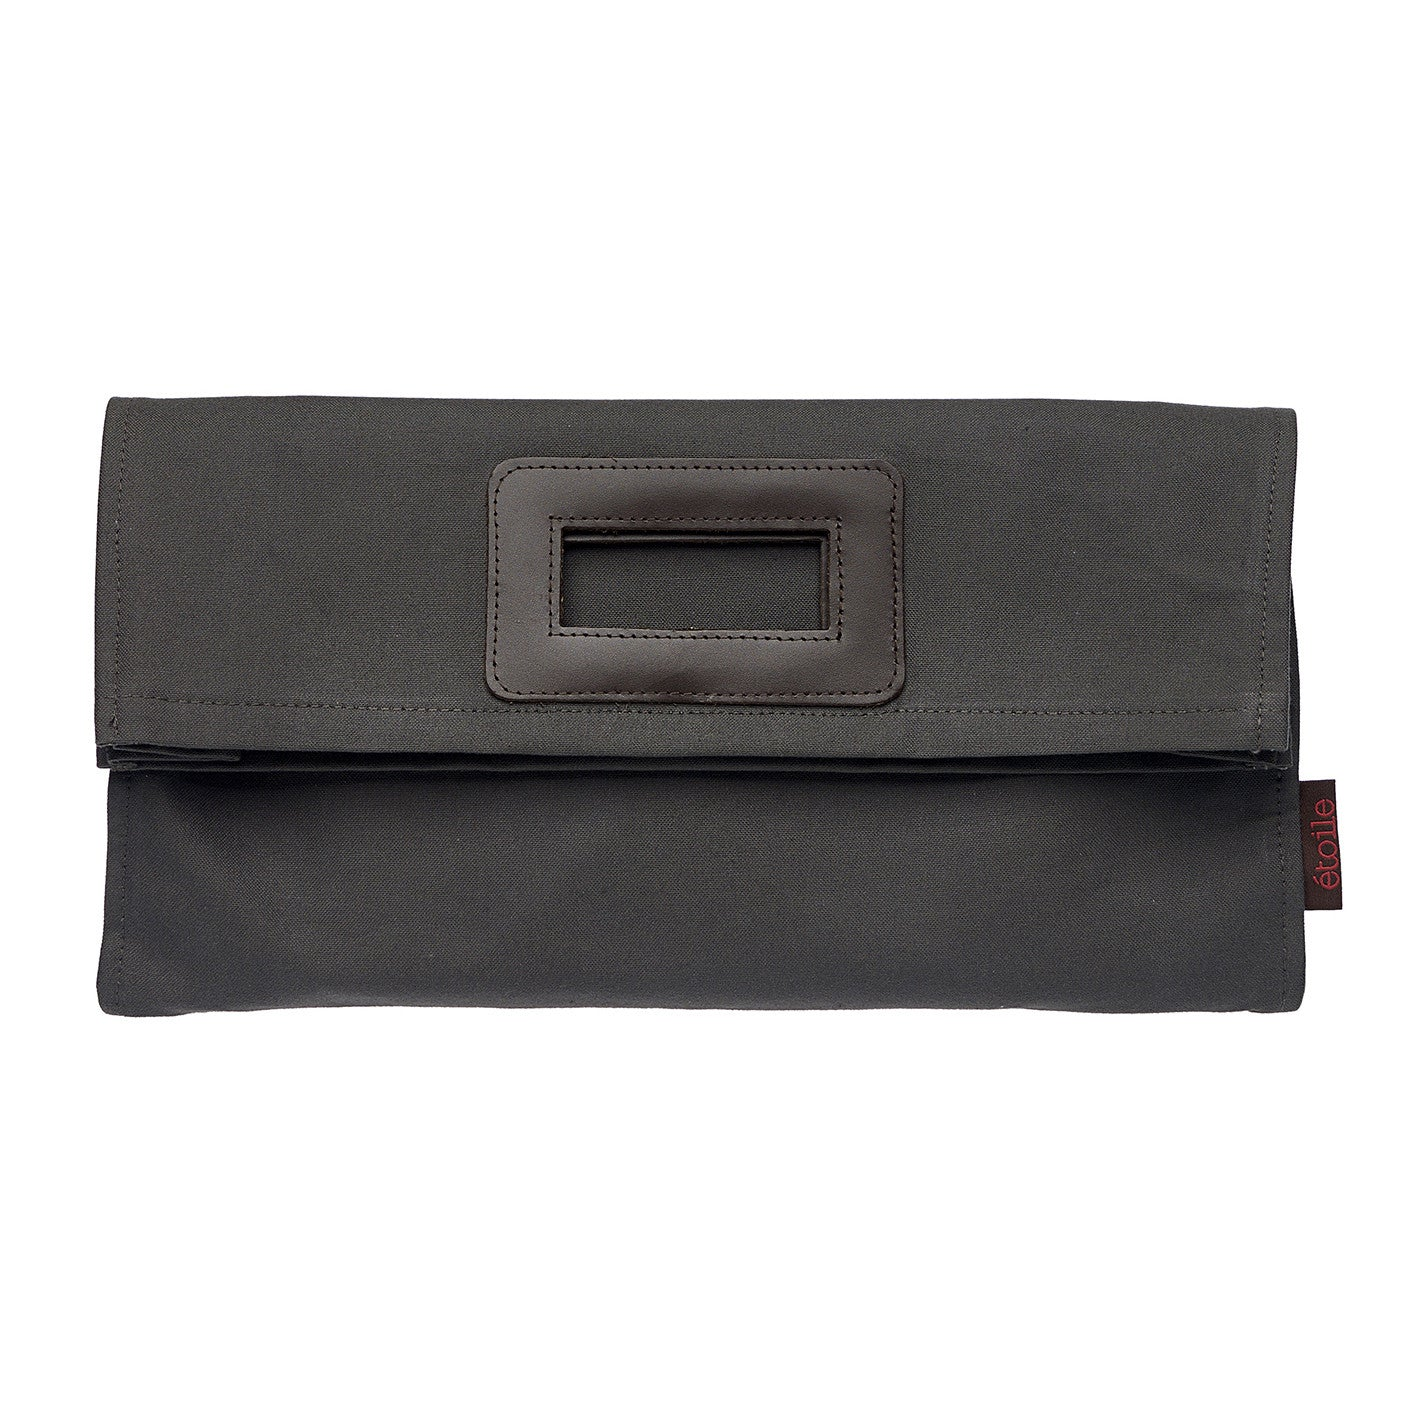 Stephanie Resin Coated Canvas Knitting Style Clutch Bag in Stone Grey